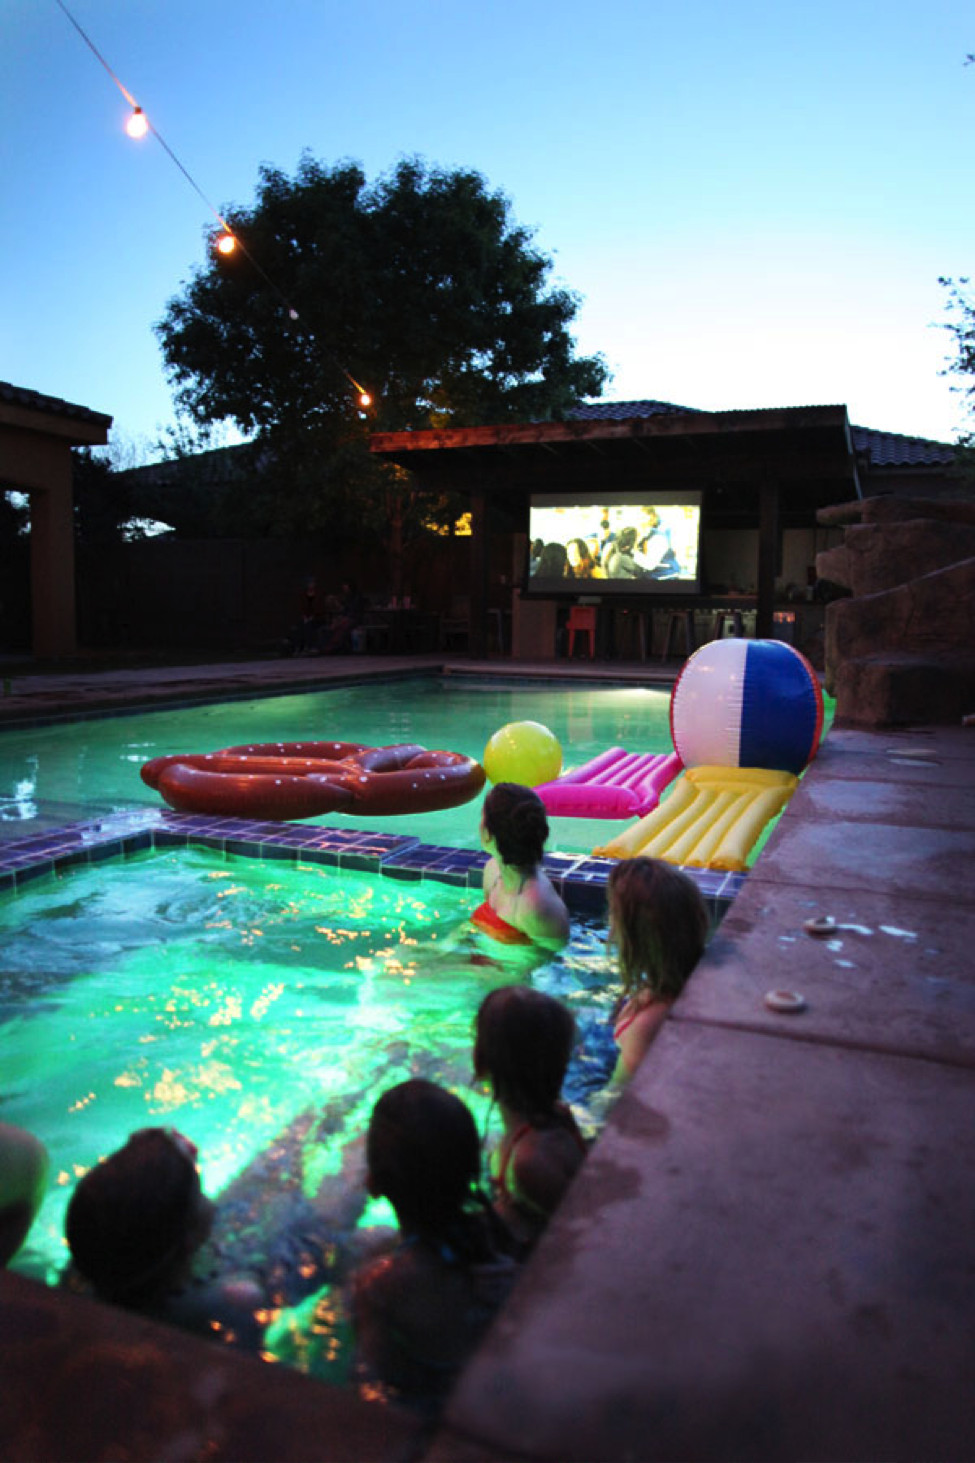 Night Pool Party Ideas For Adults  Pool Party Ideas